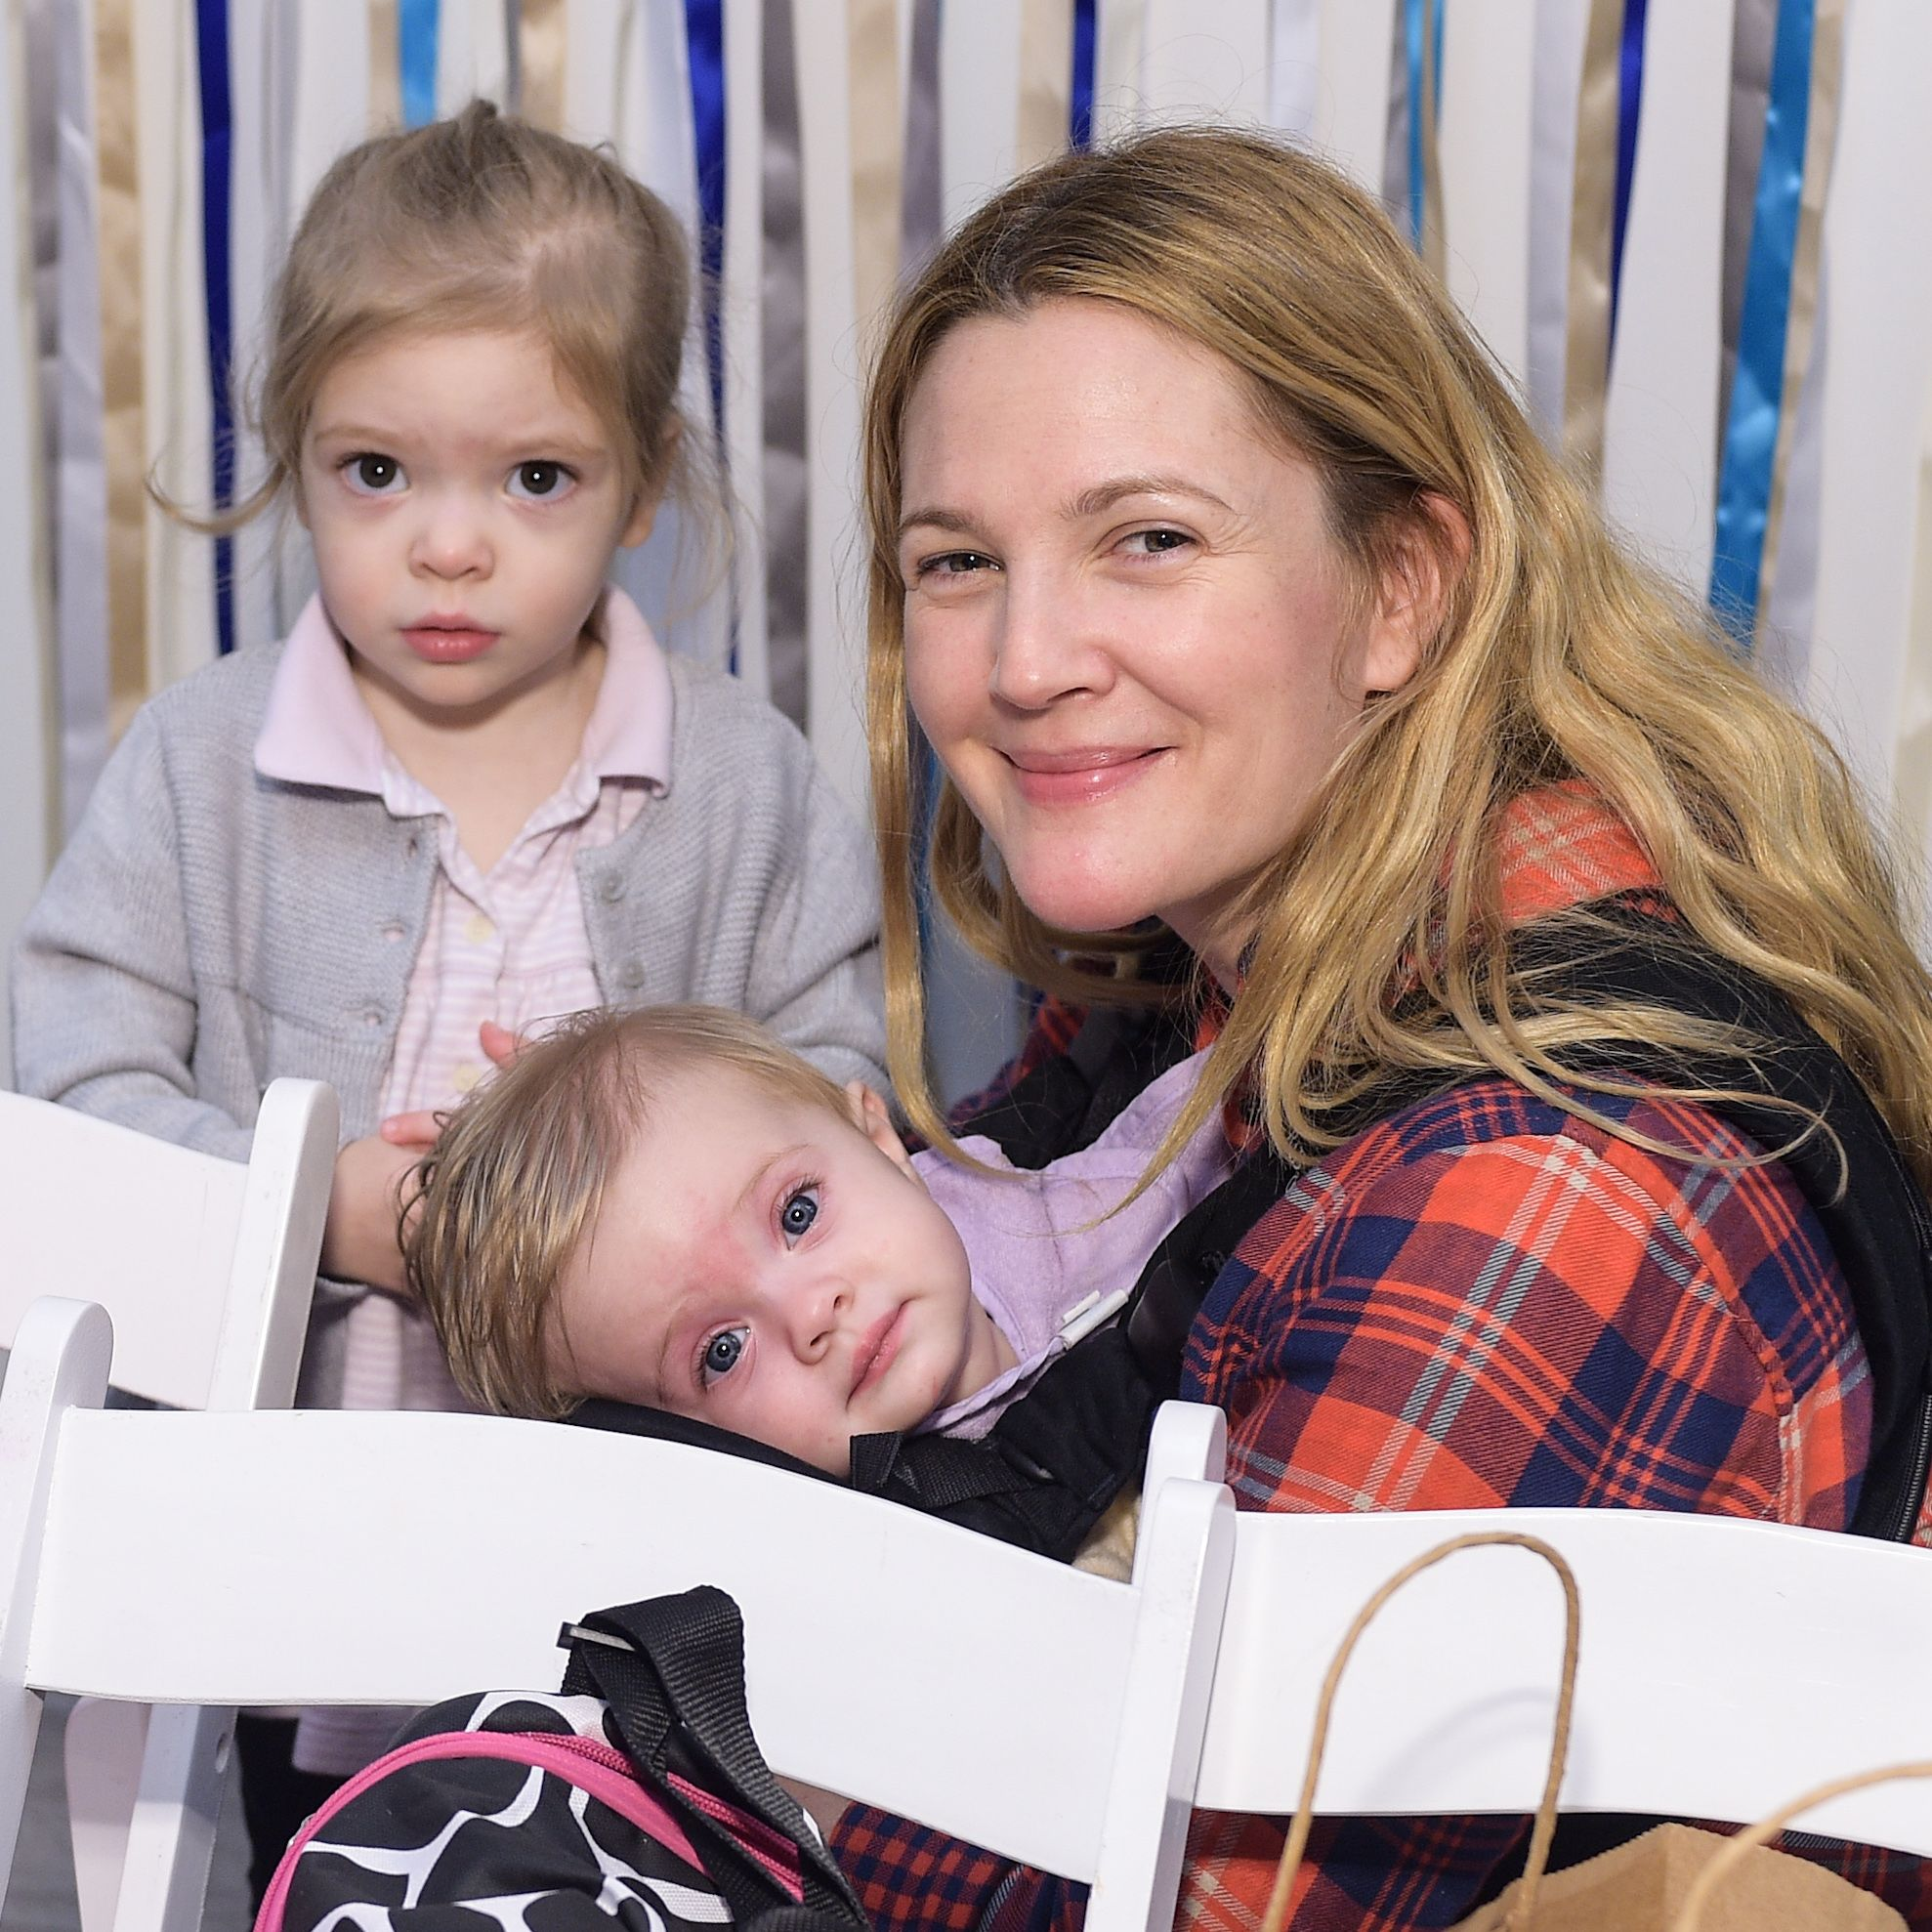 olive1 20 Things You Might Not Have Realised About Drew Barrymore